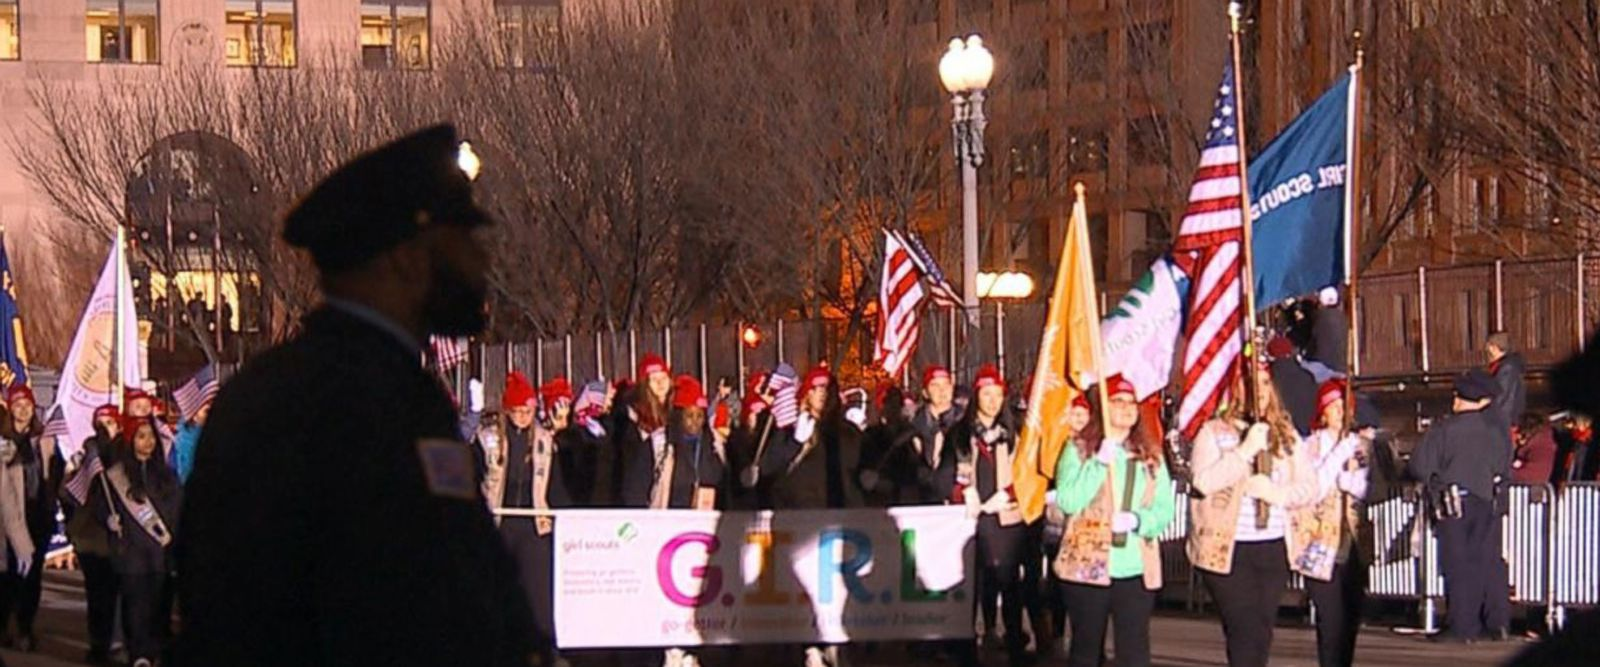 VIDEO: Girl Scouts March in Inaugural Parade Despite Pressure to Drop Out